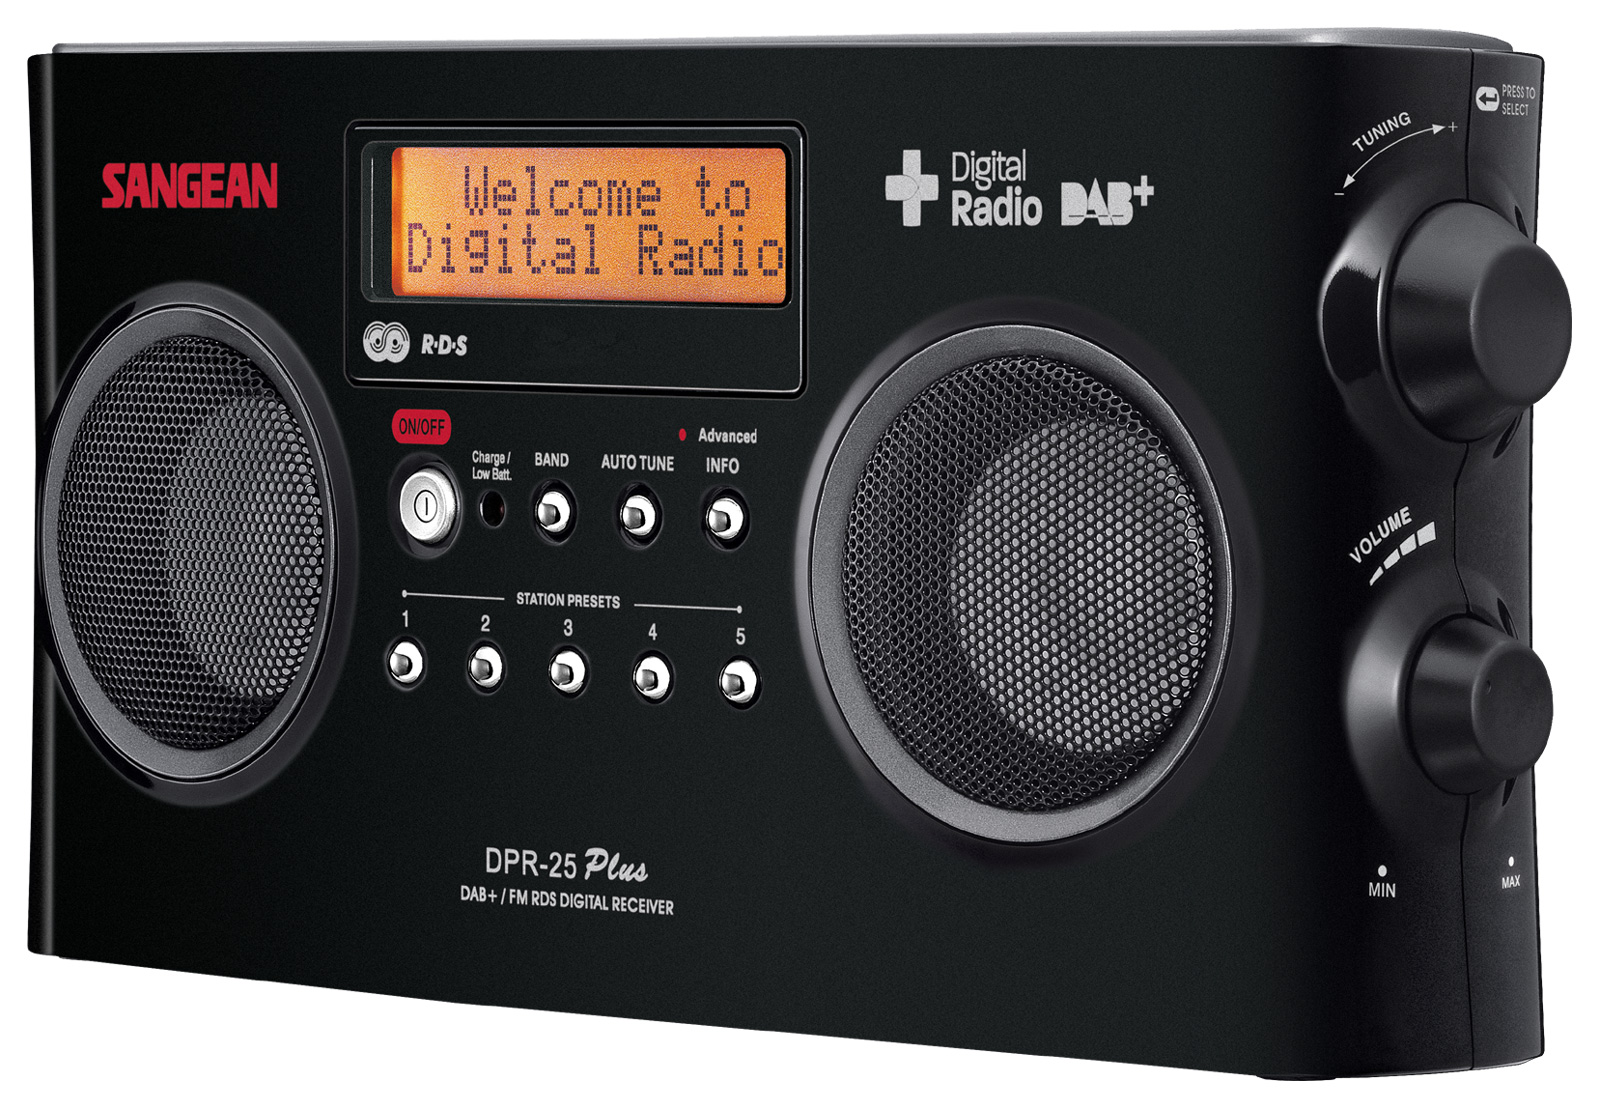 sangean dpr 25 dab fm rds digital radio stereo receiver. Black Bedroom Furniture Sets. Home Design Ideas